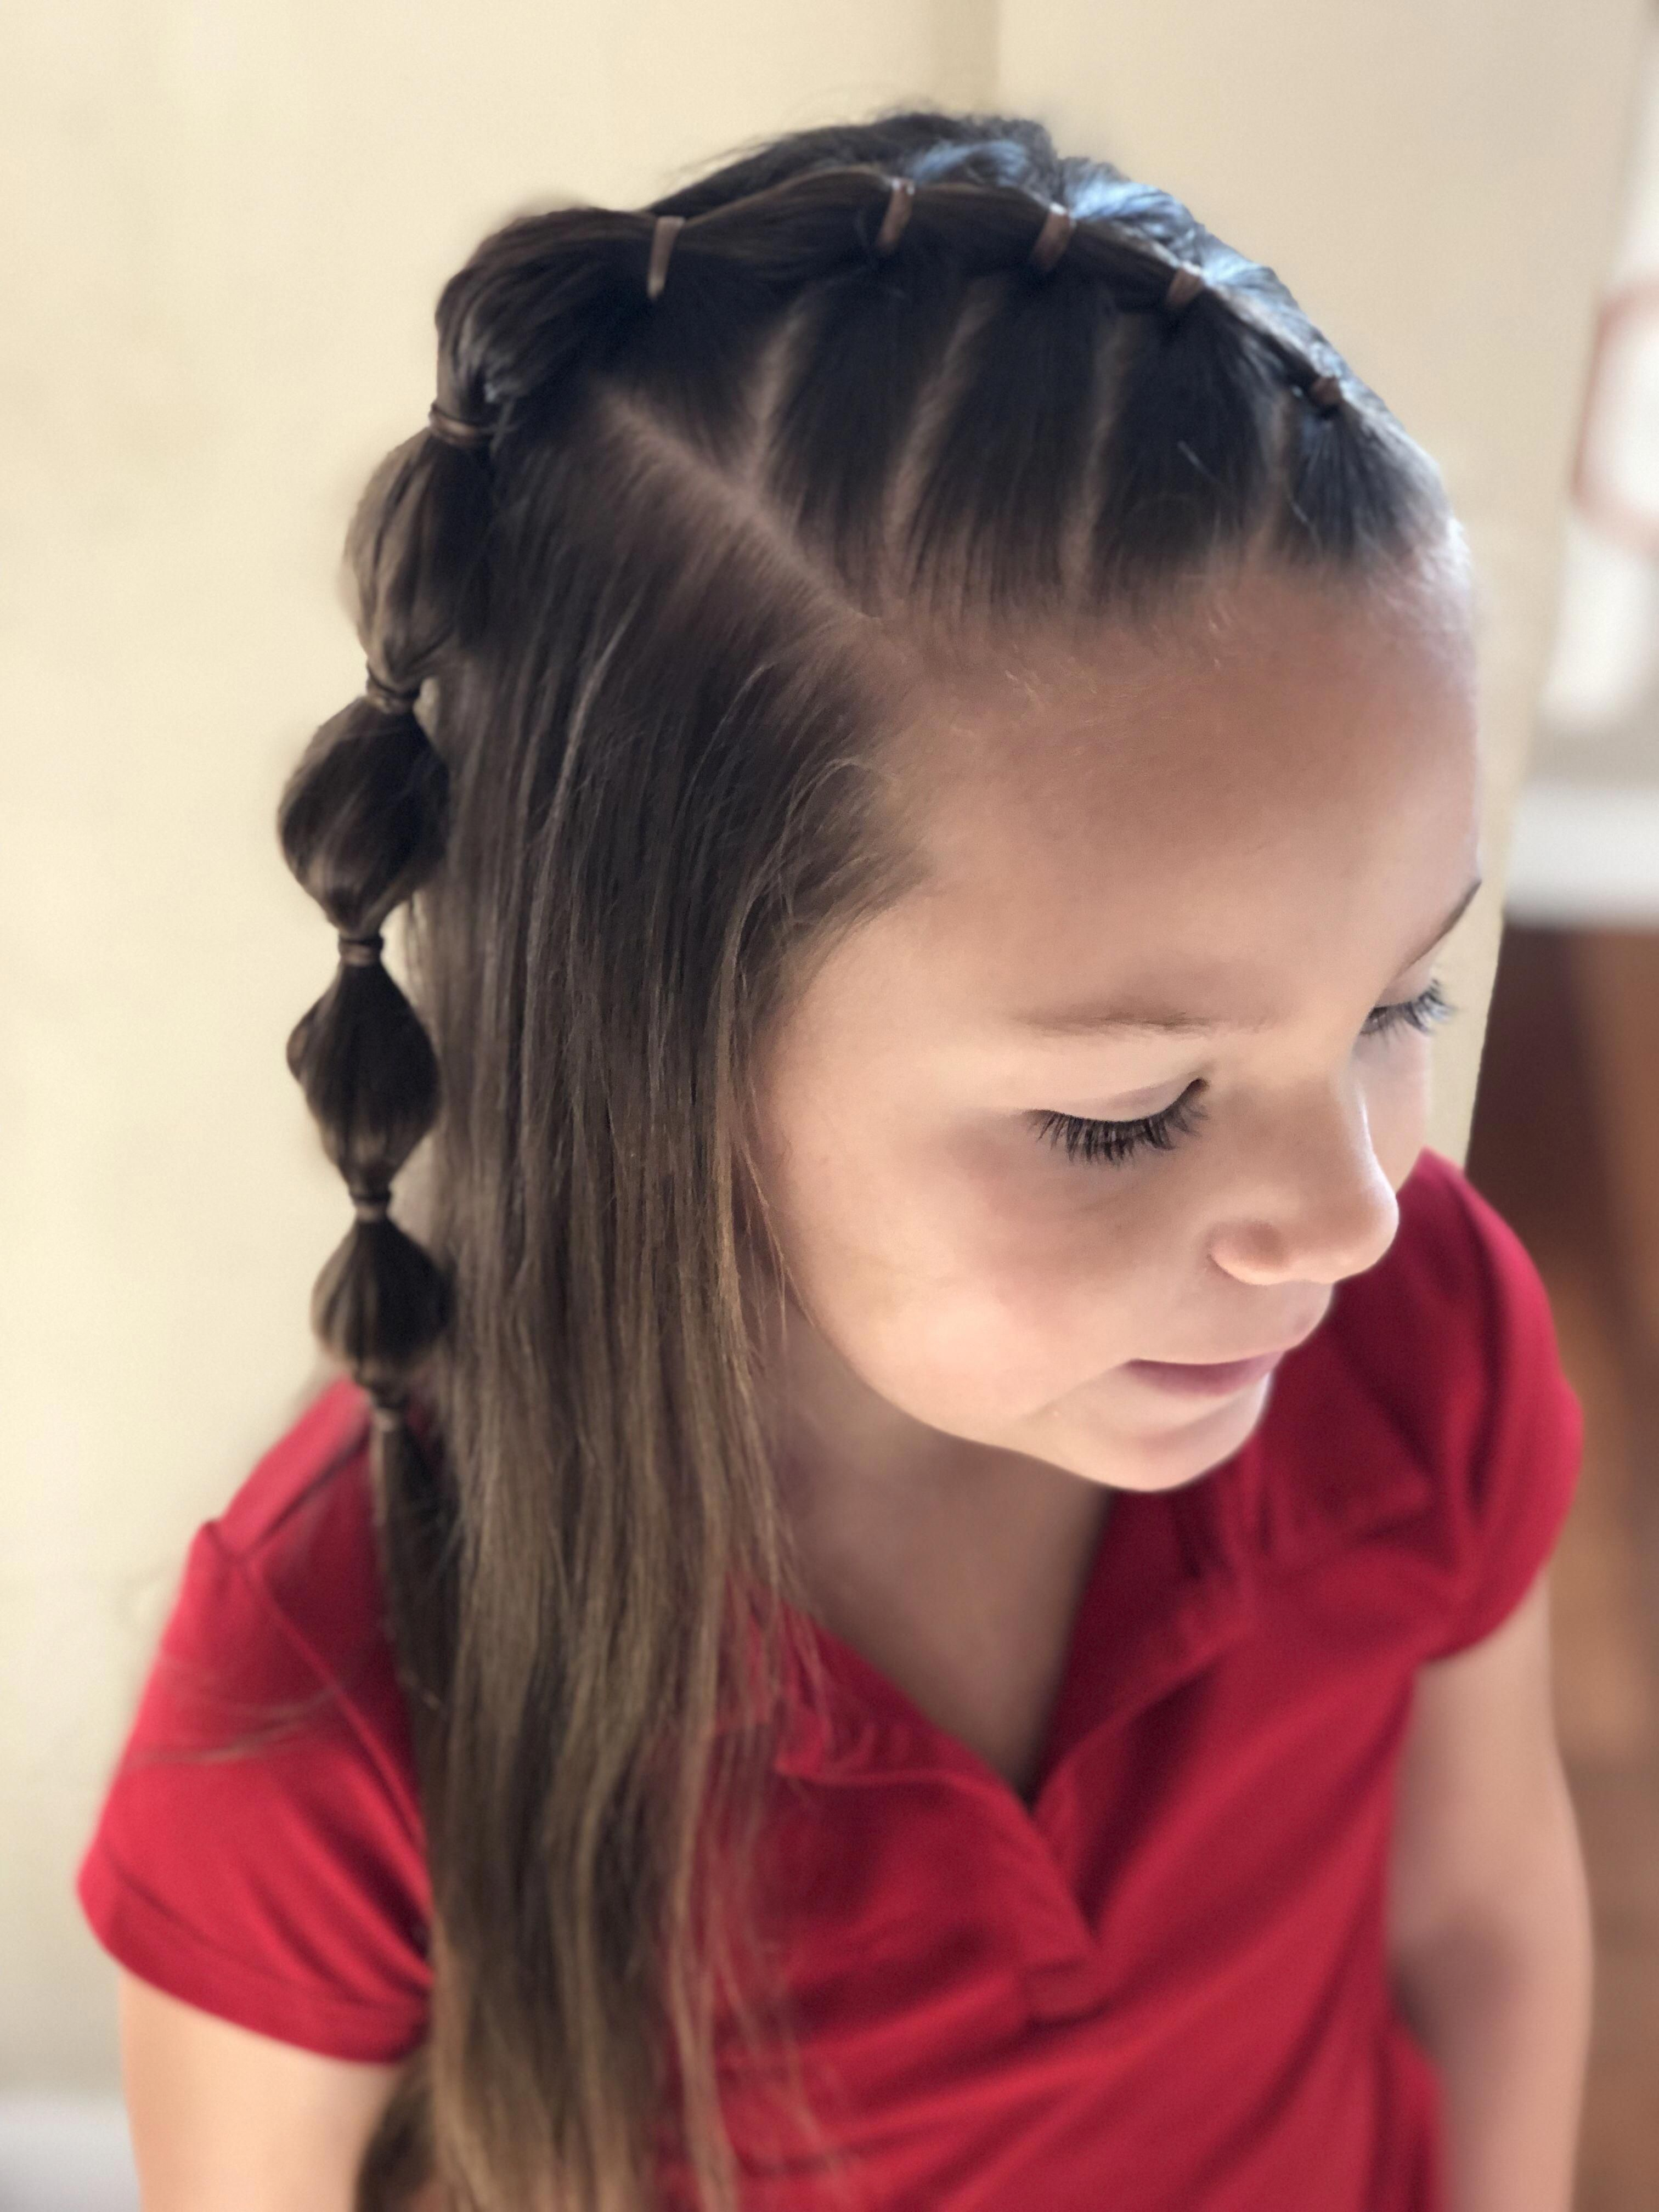 Braided Hairstyles For Black Women Braidedhairstyles Girl Hair Dos Baby Girl Hairstyles Kids Hairstyles